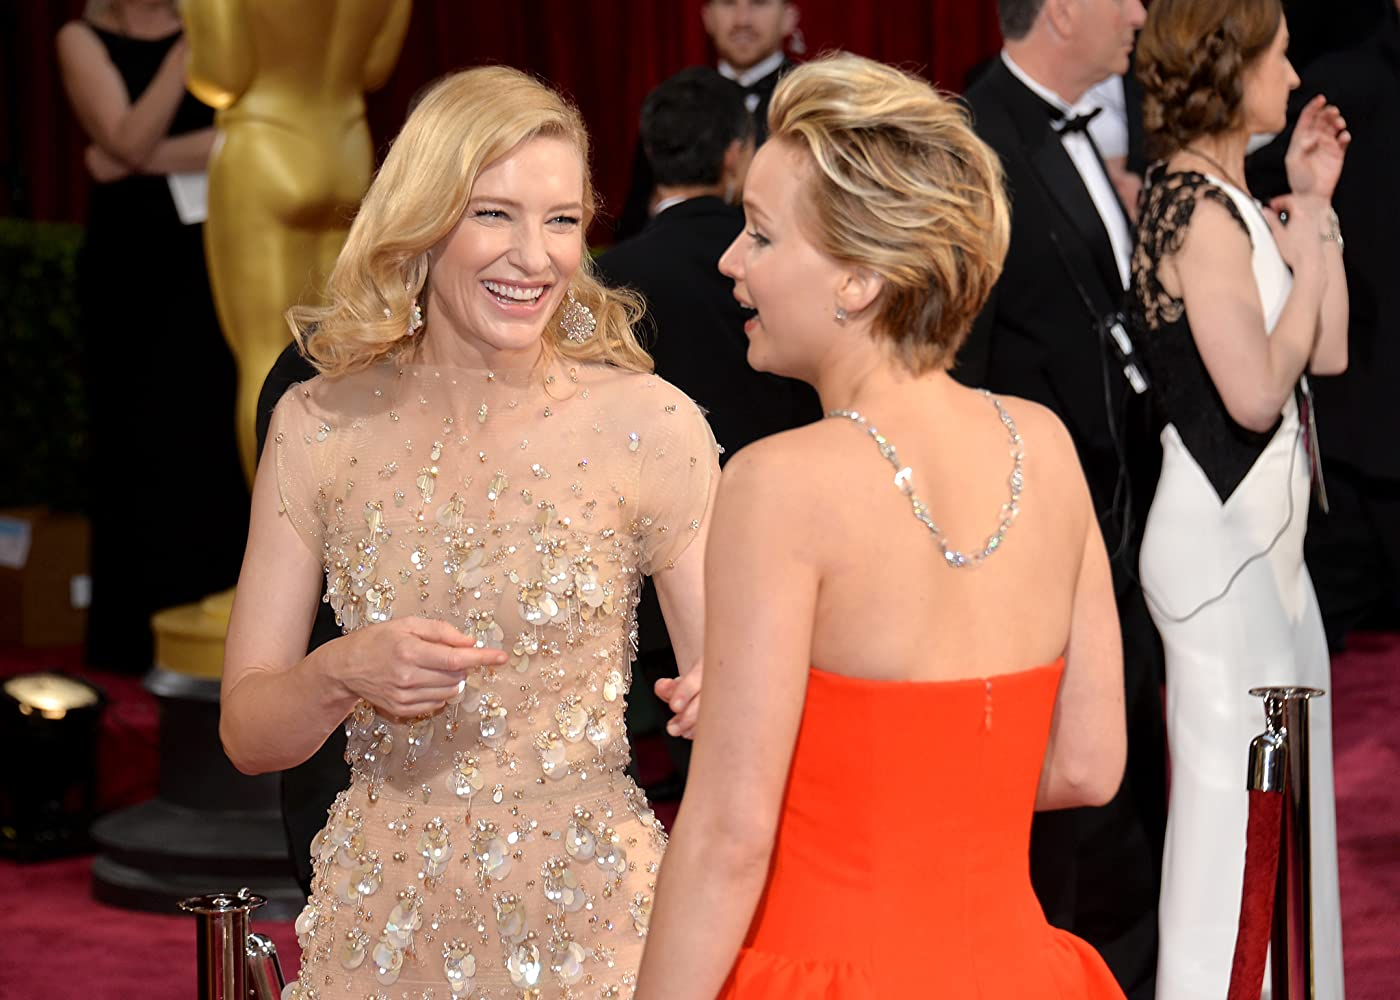 Cate Blanchett and Jennifer Lawrence